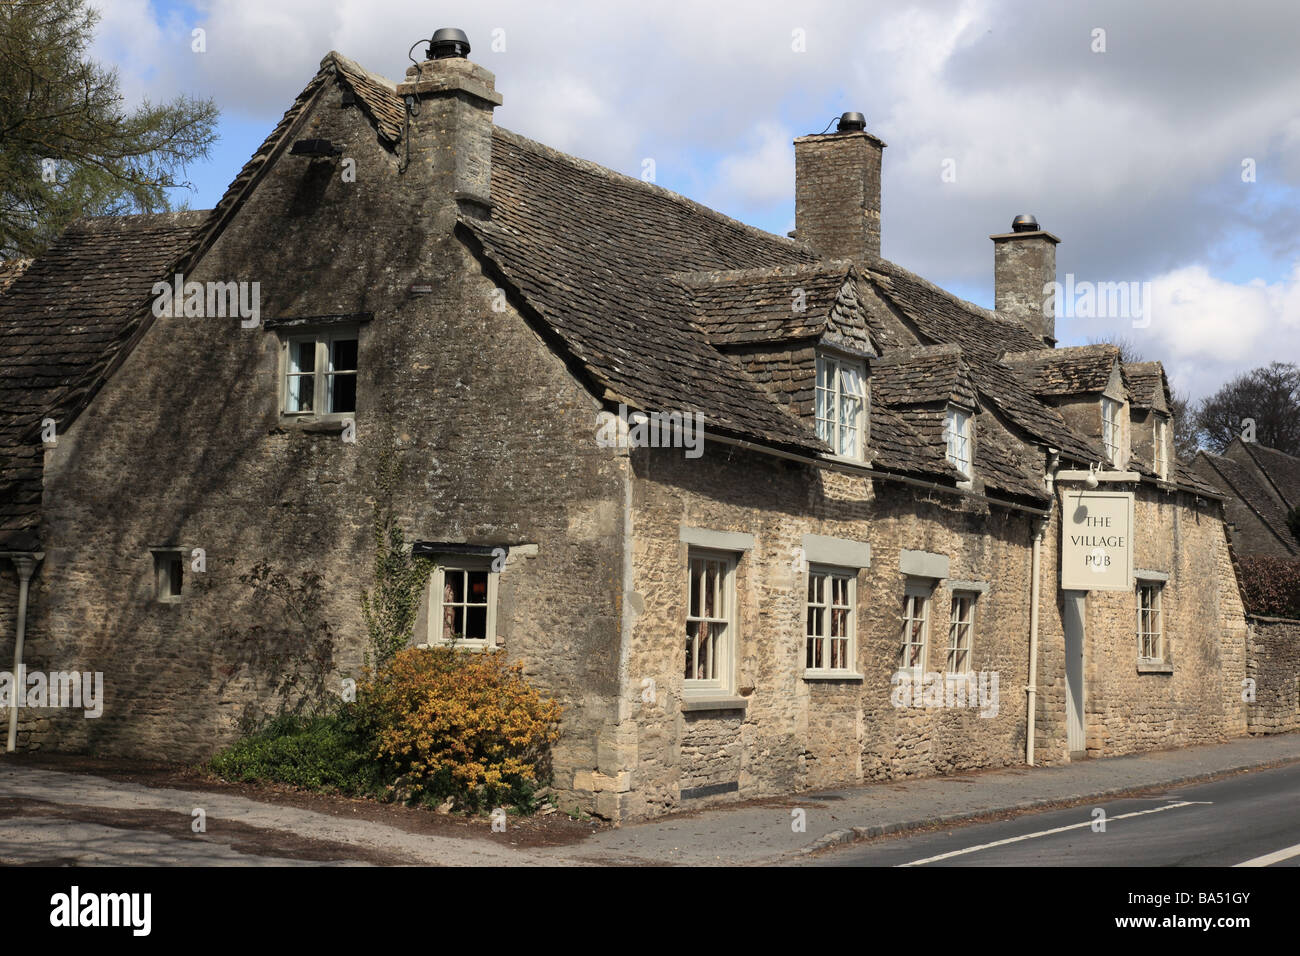 The Village Pub in Barnsley, The Cotswolds, England - Stock Image